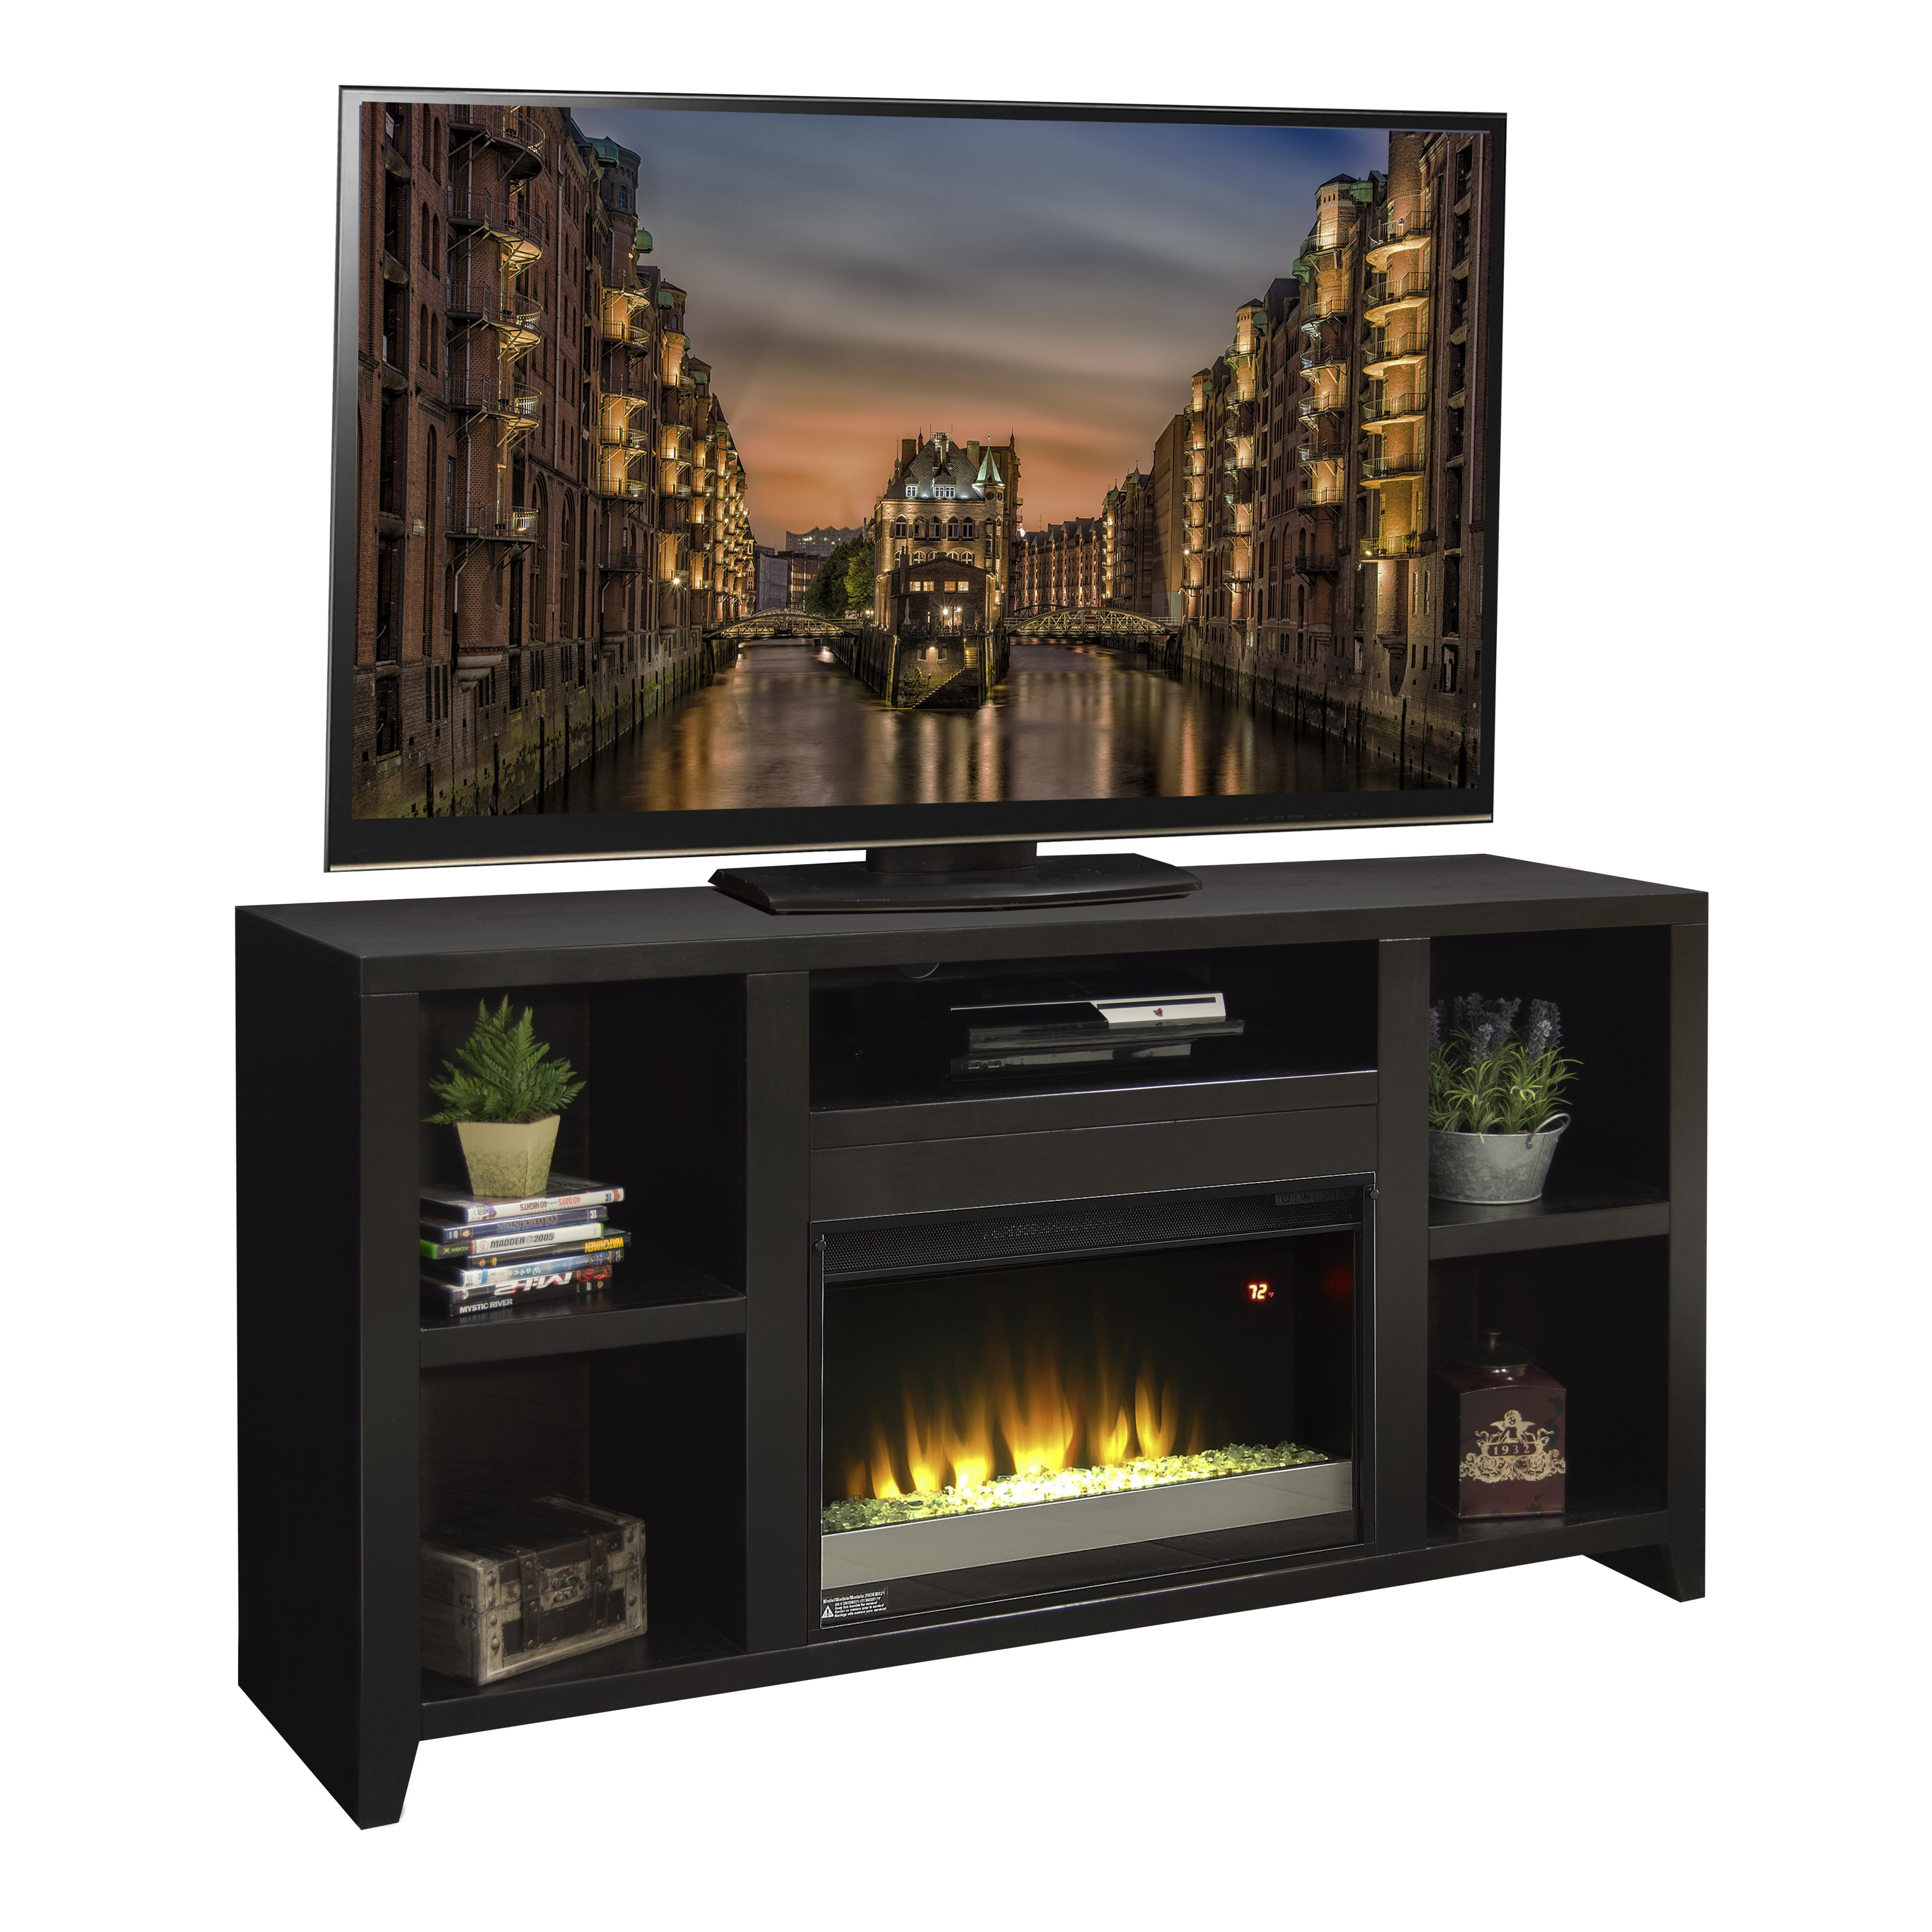 "Urban Loft 63"" Fireplace TV Console by Legends Furniture at Home Furnishings Direct"